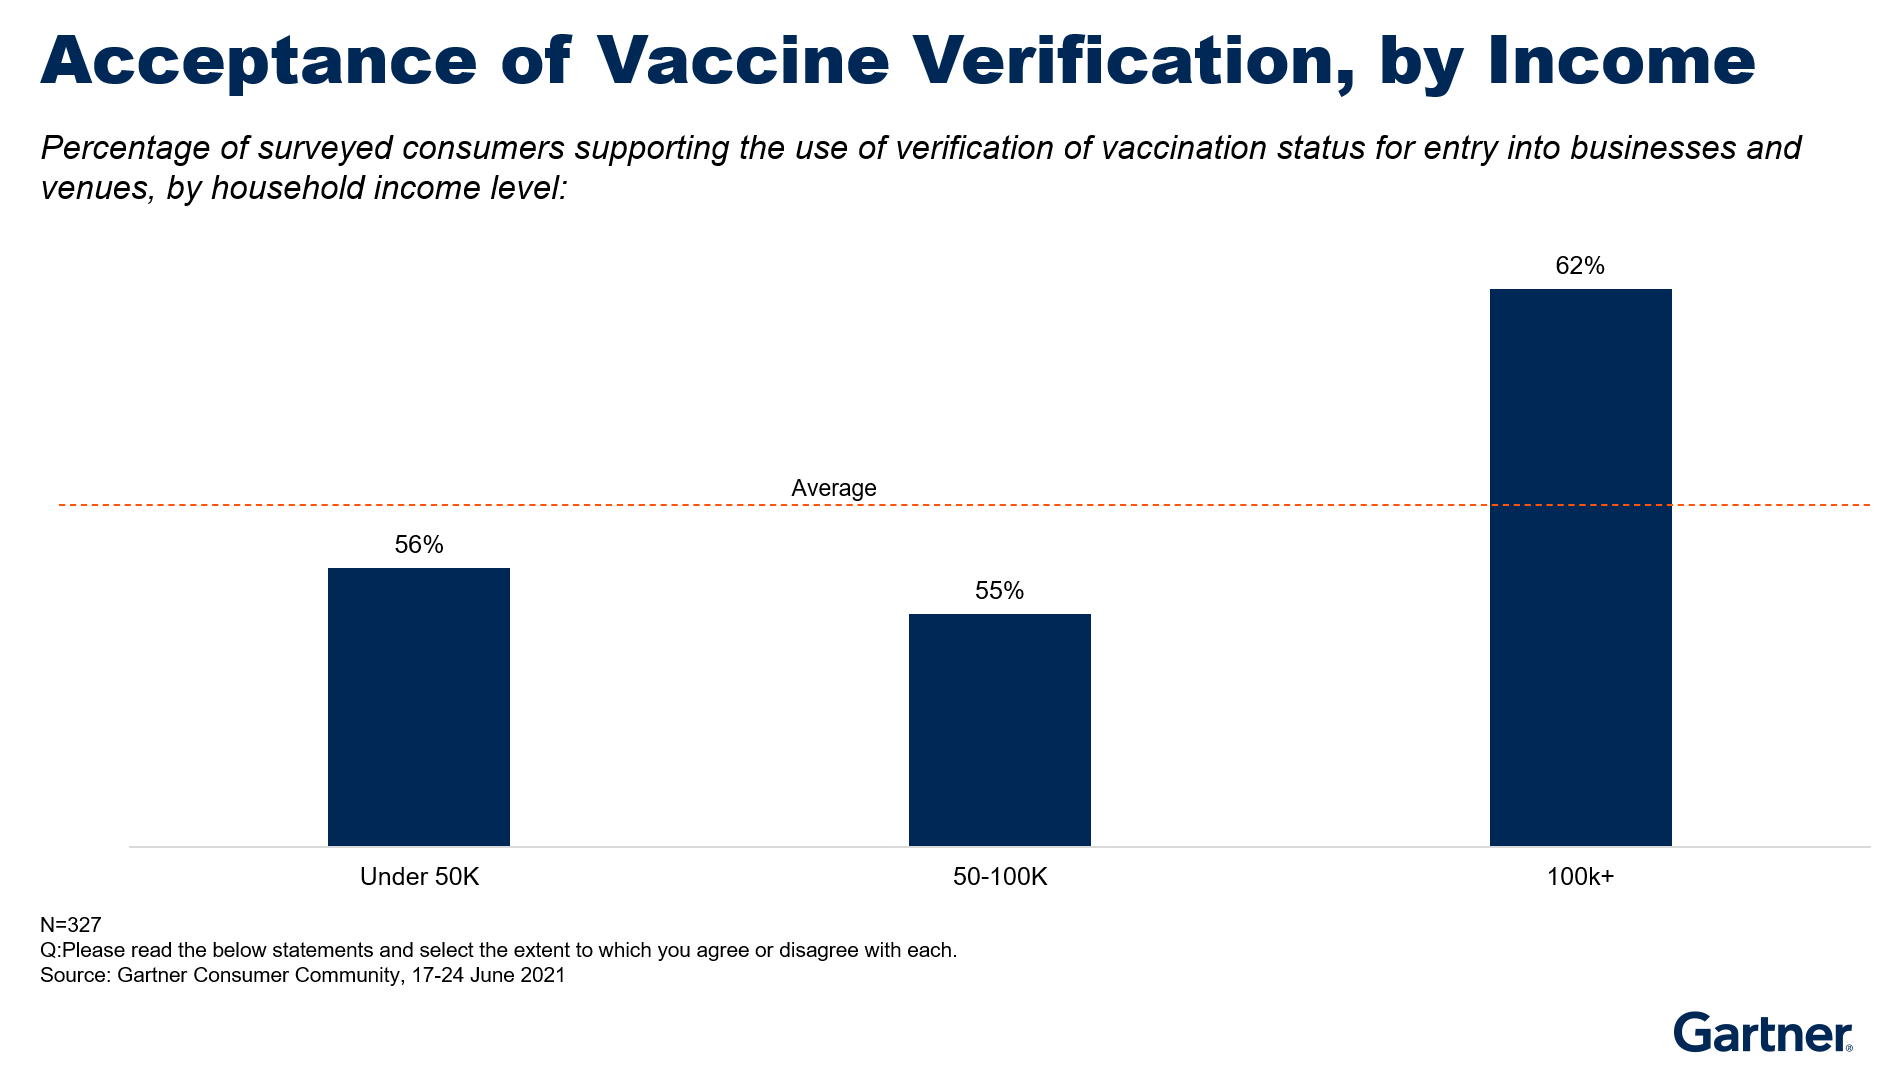 Figure 2. Acceptance of Vaccine Verification, by Income